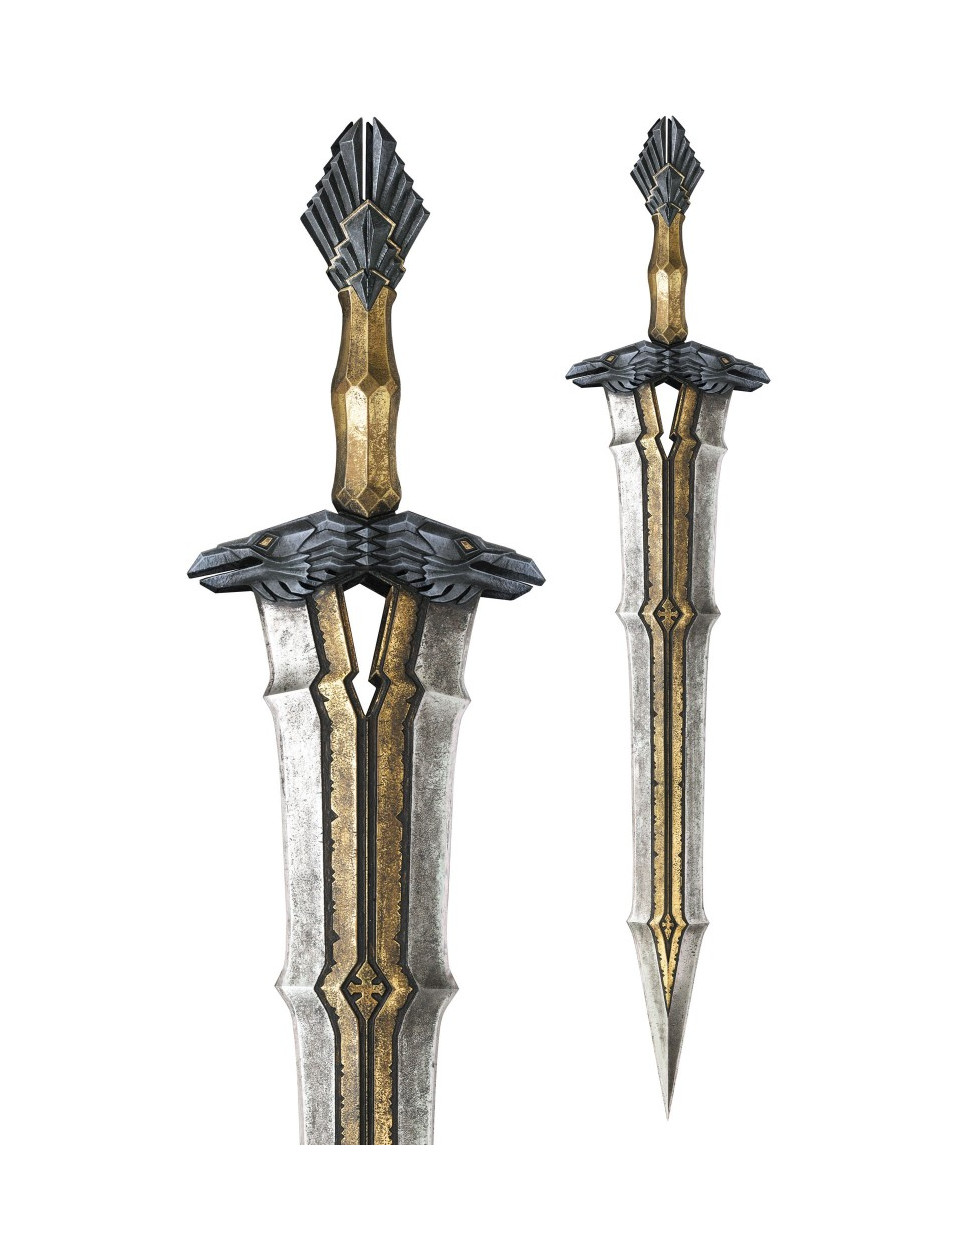 The Hobbit - Regal Sword of Thorin Oakenshield